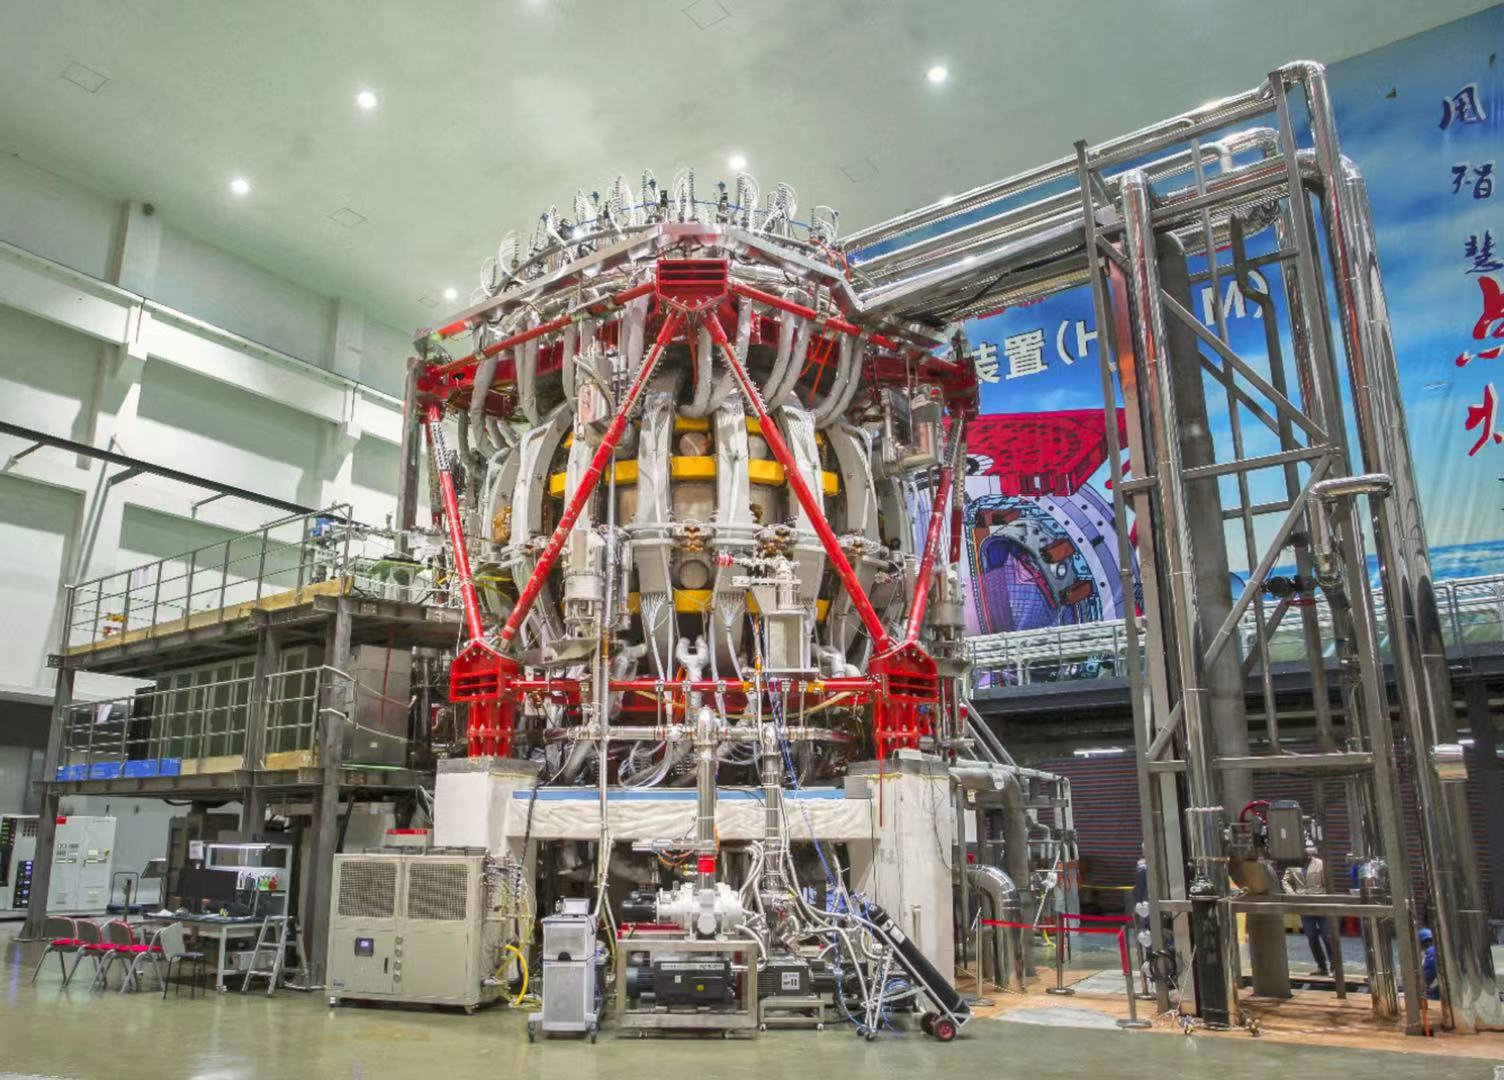 China commissions new-generation 'artificial sun'